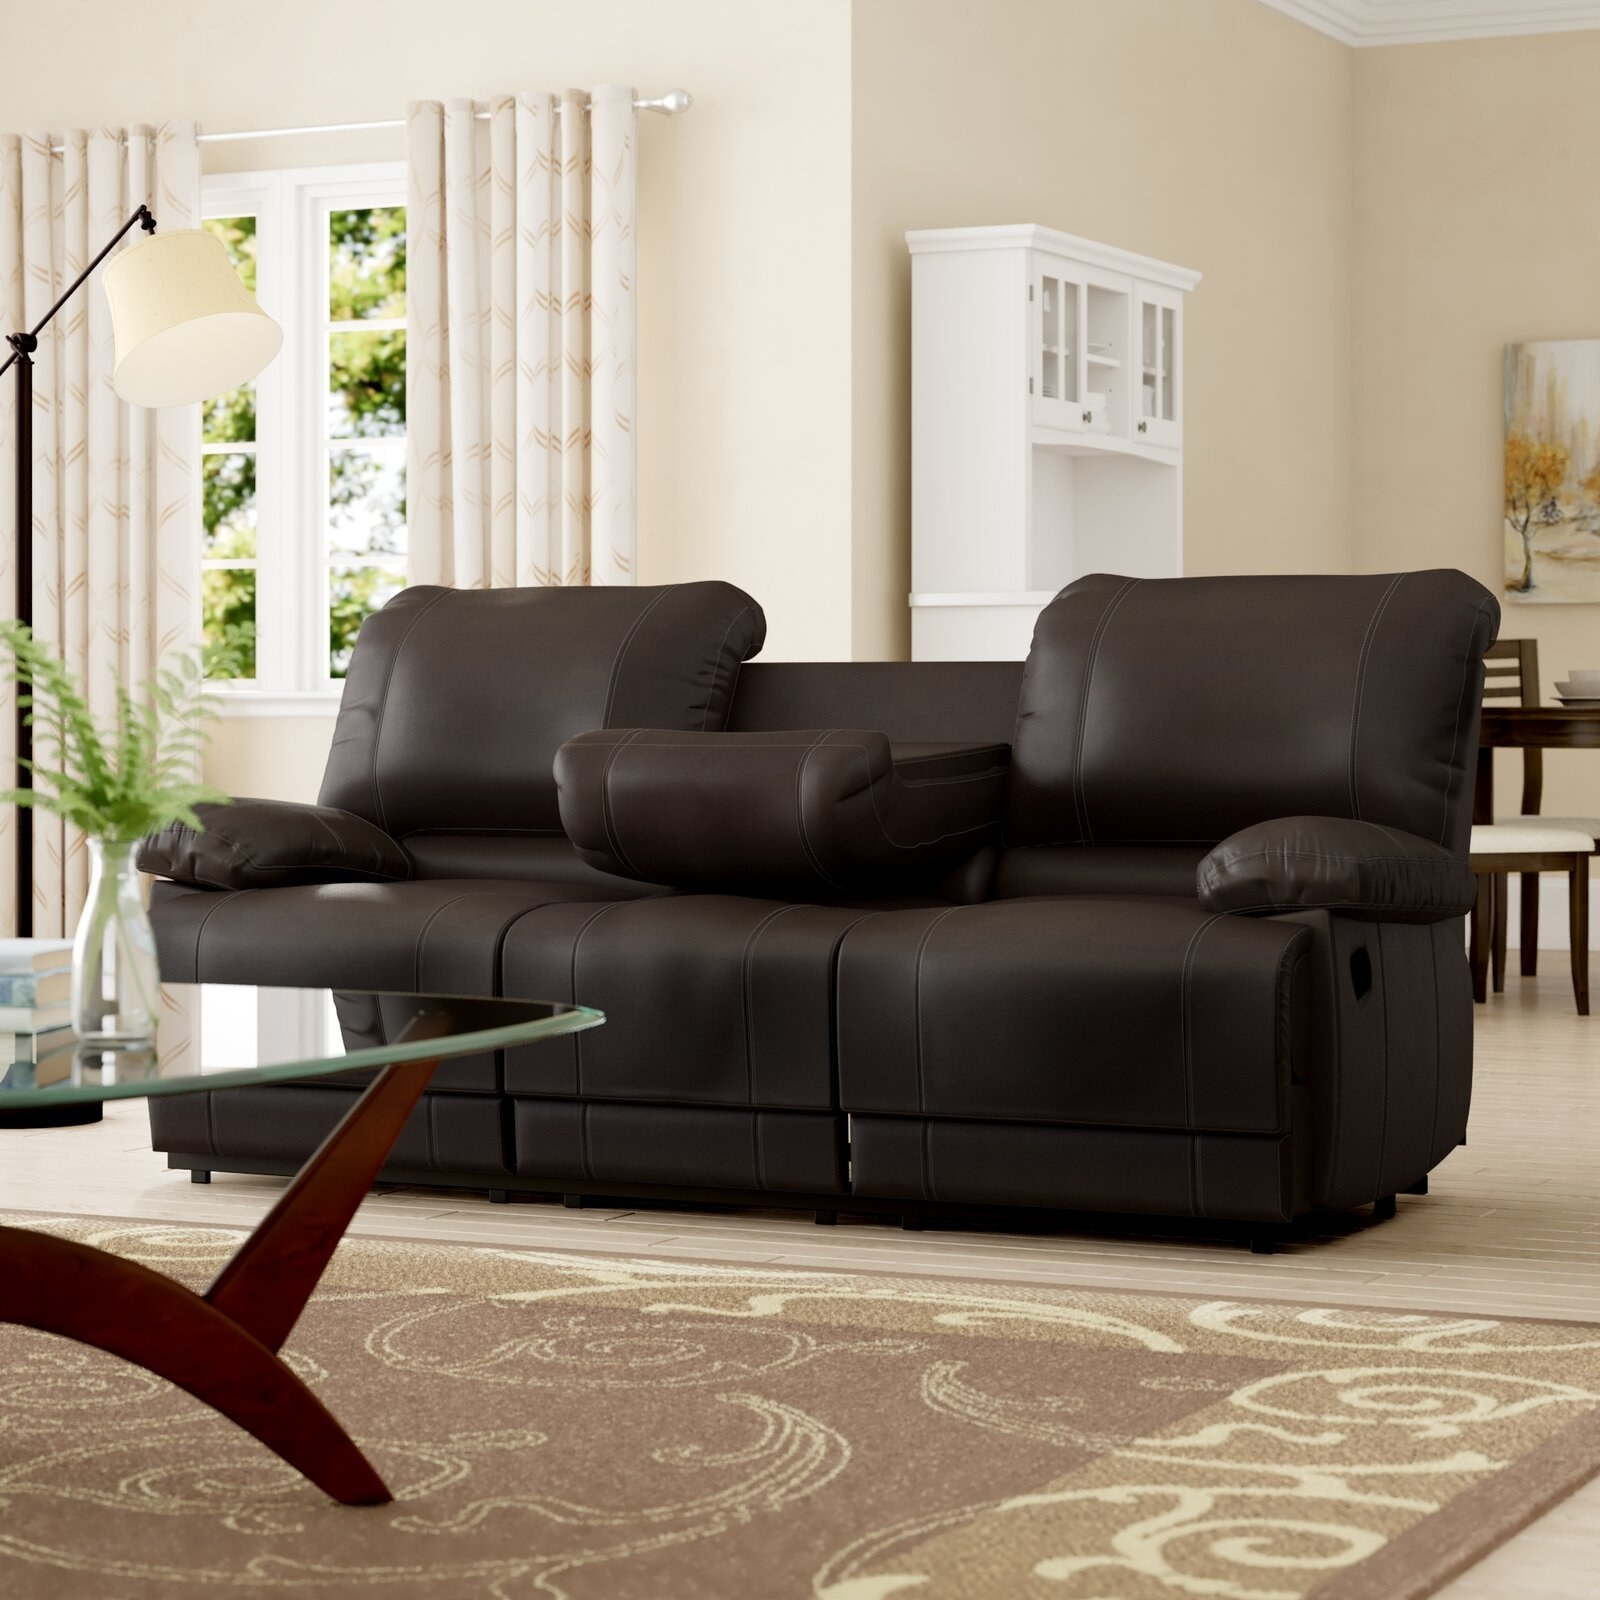 Reclining pillow top arm sofa with collapsible center console with built-in cupholders